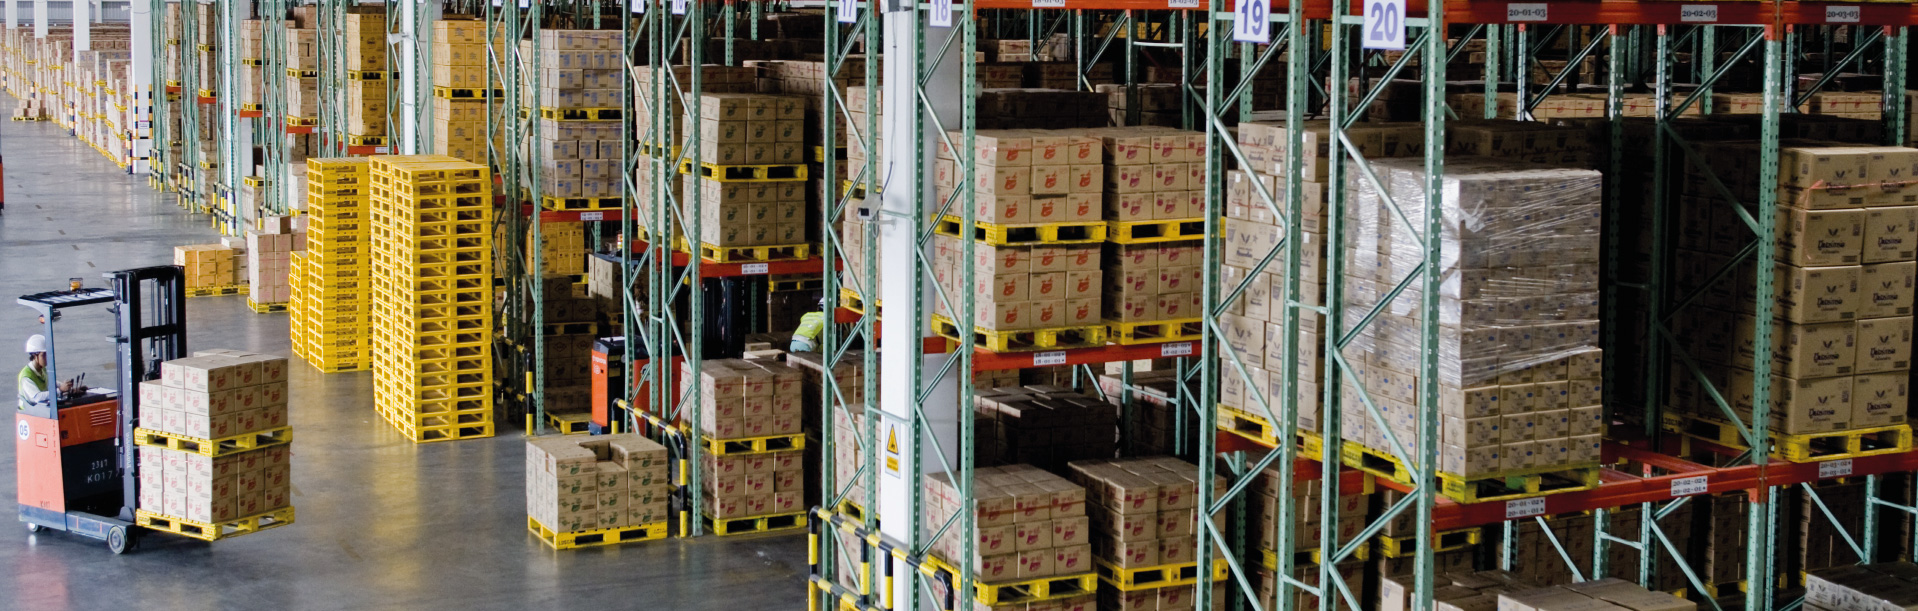 warehouse-inventory-photo